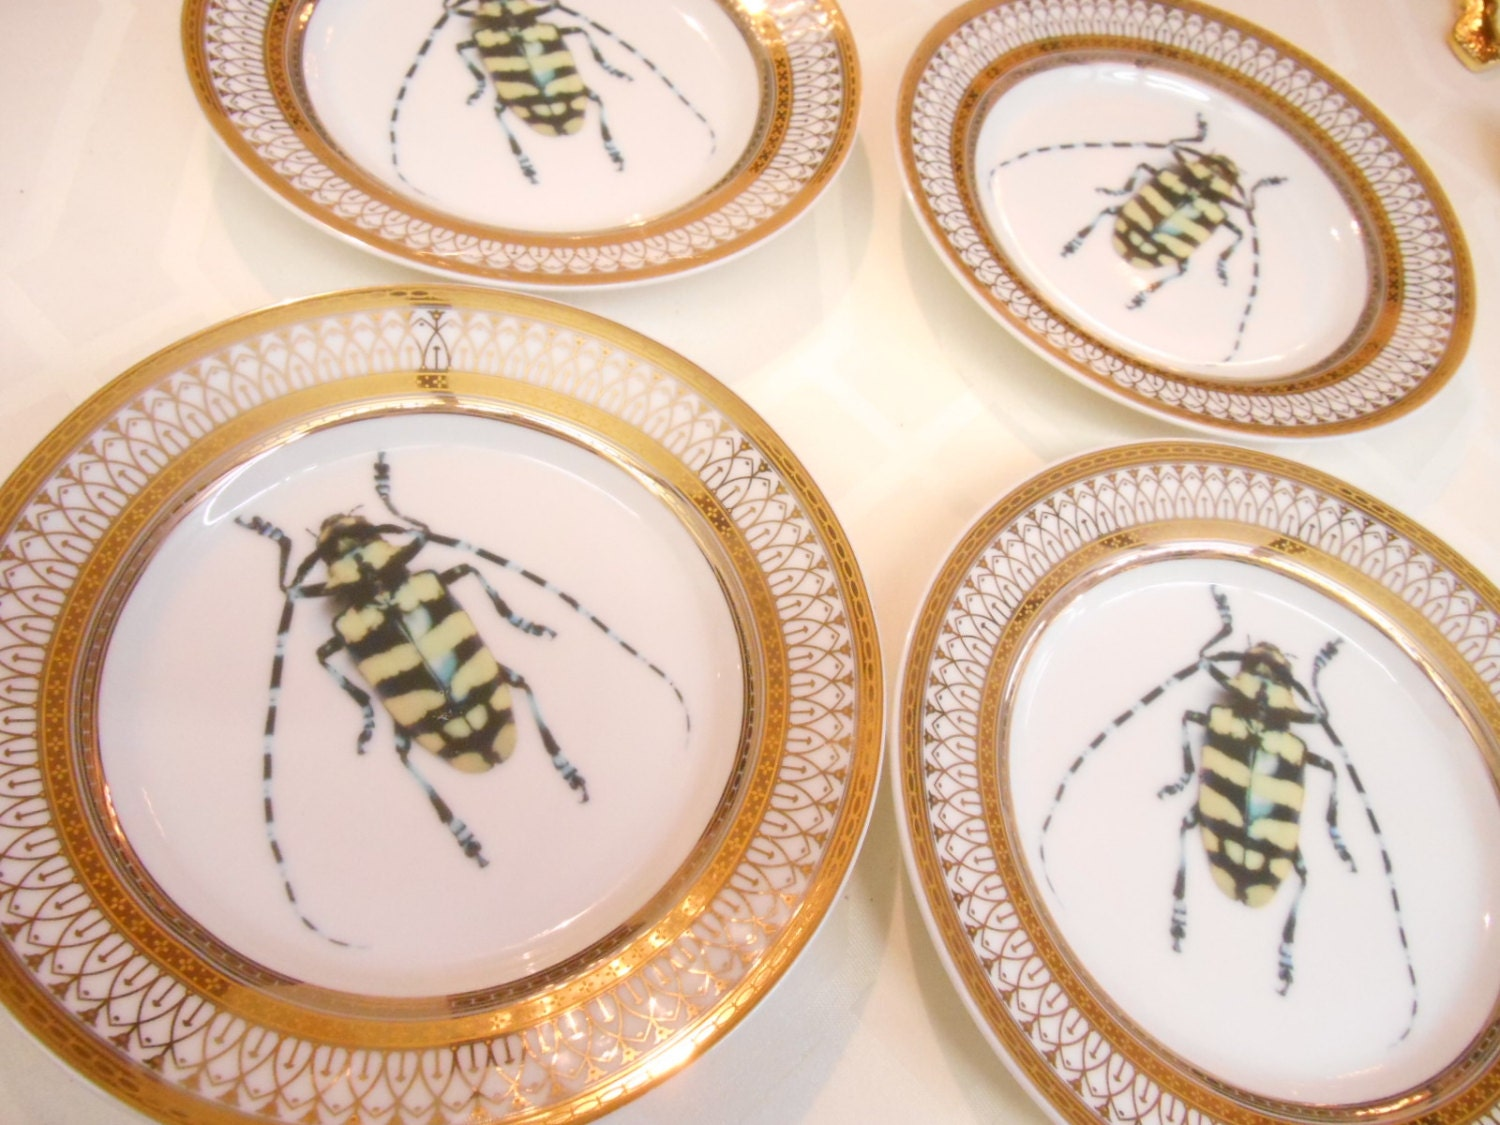 rushshipping for gita   gold ornate bug salad plates -  funky dishes custom plates custom dinnerware custom porcelaincustom tableware customized tablewaresilver dinnerware silver dishessilver plates